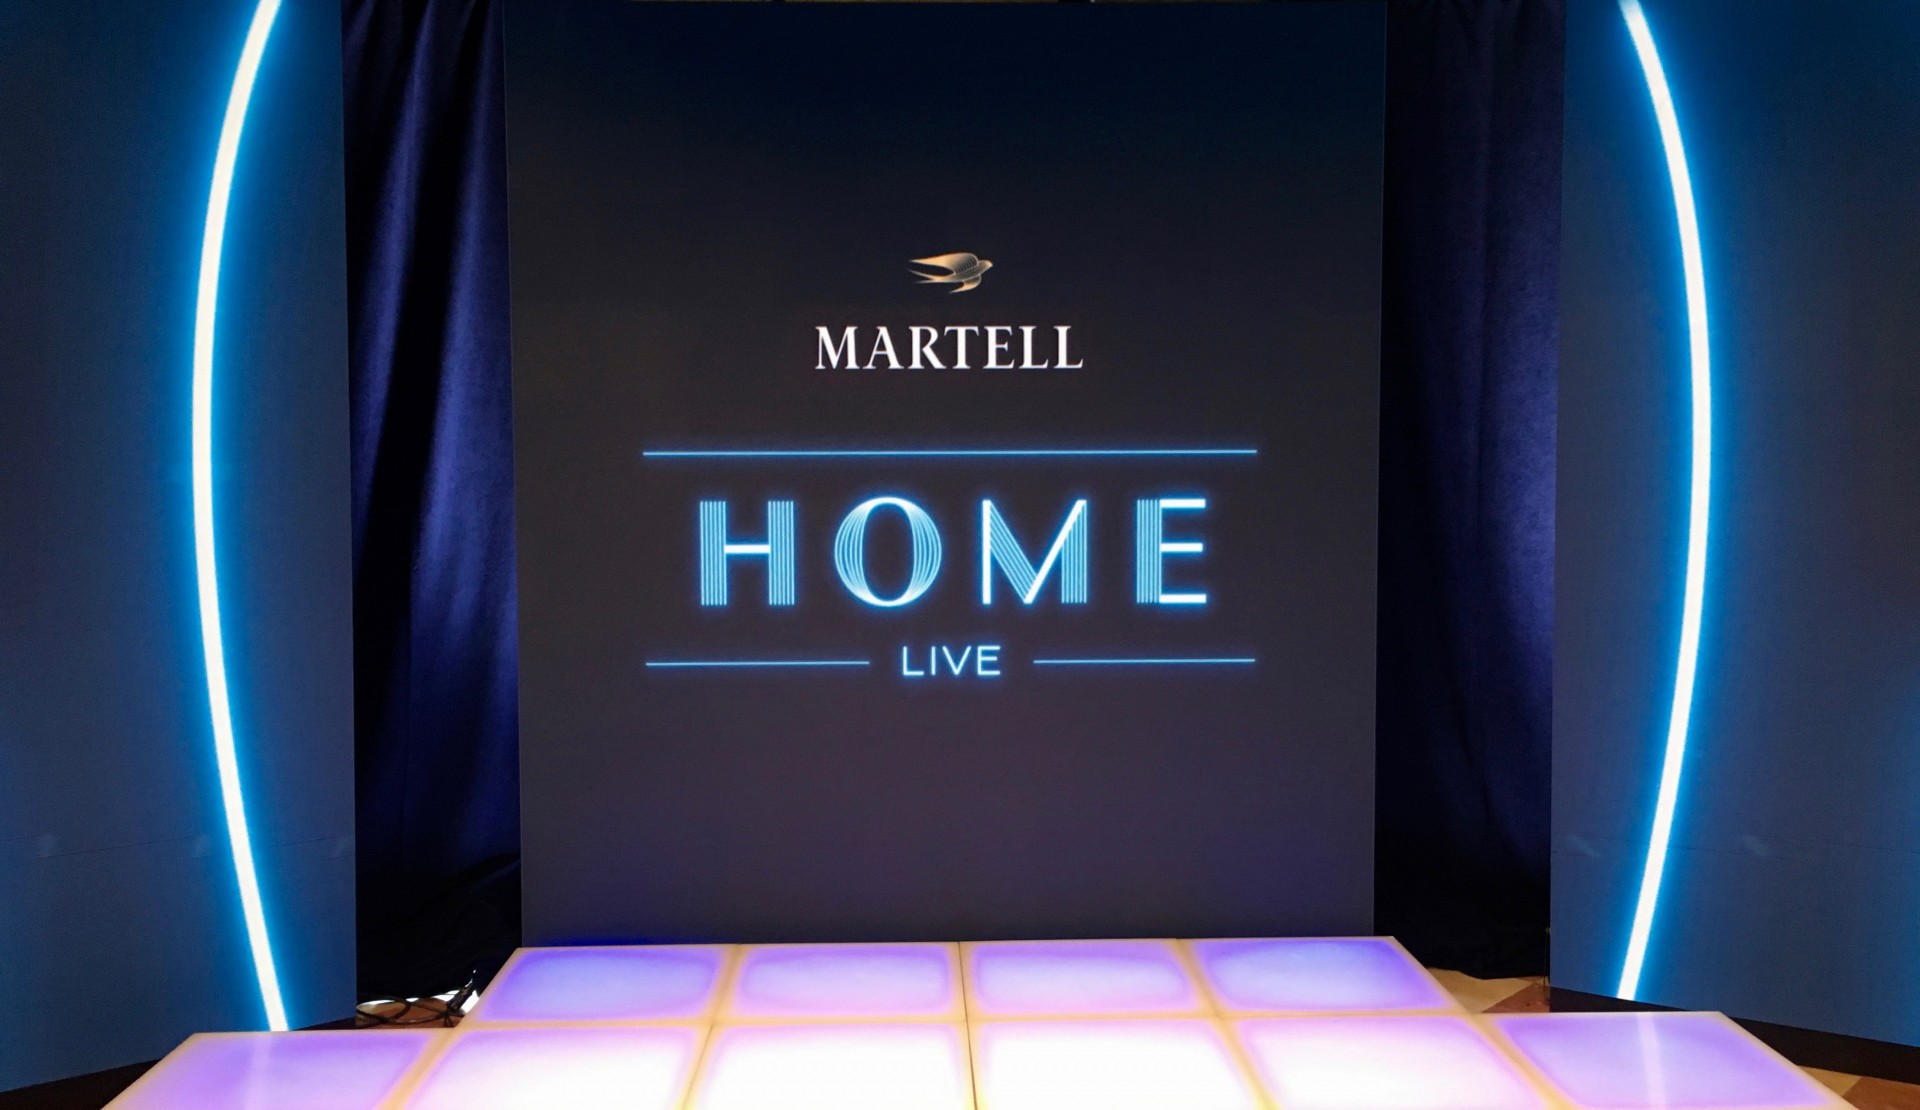 LED VIDEO WALL for the presentation of the brand Martell